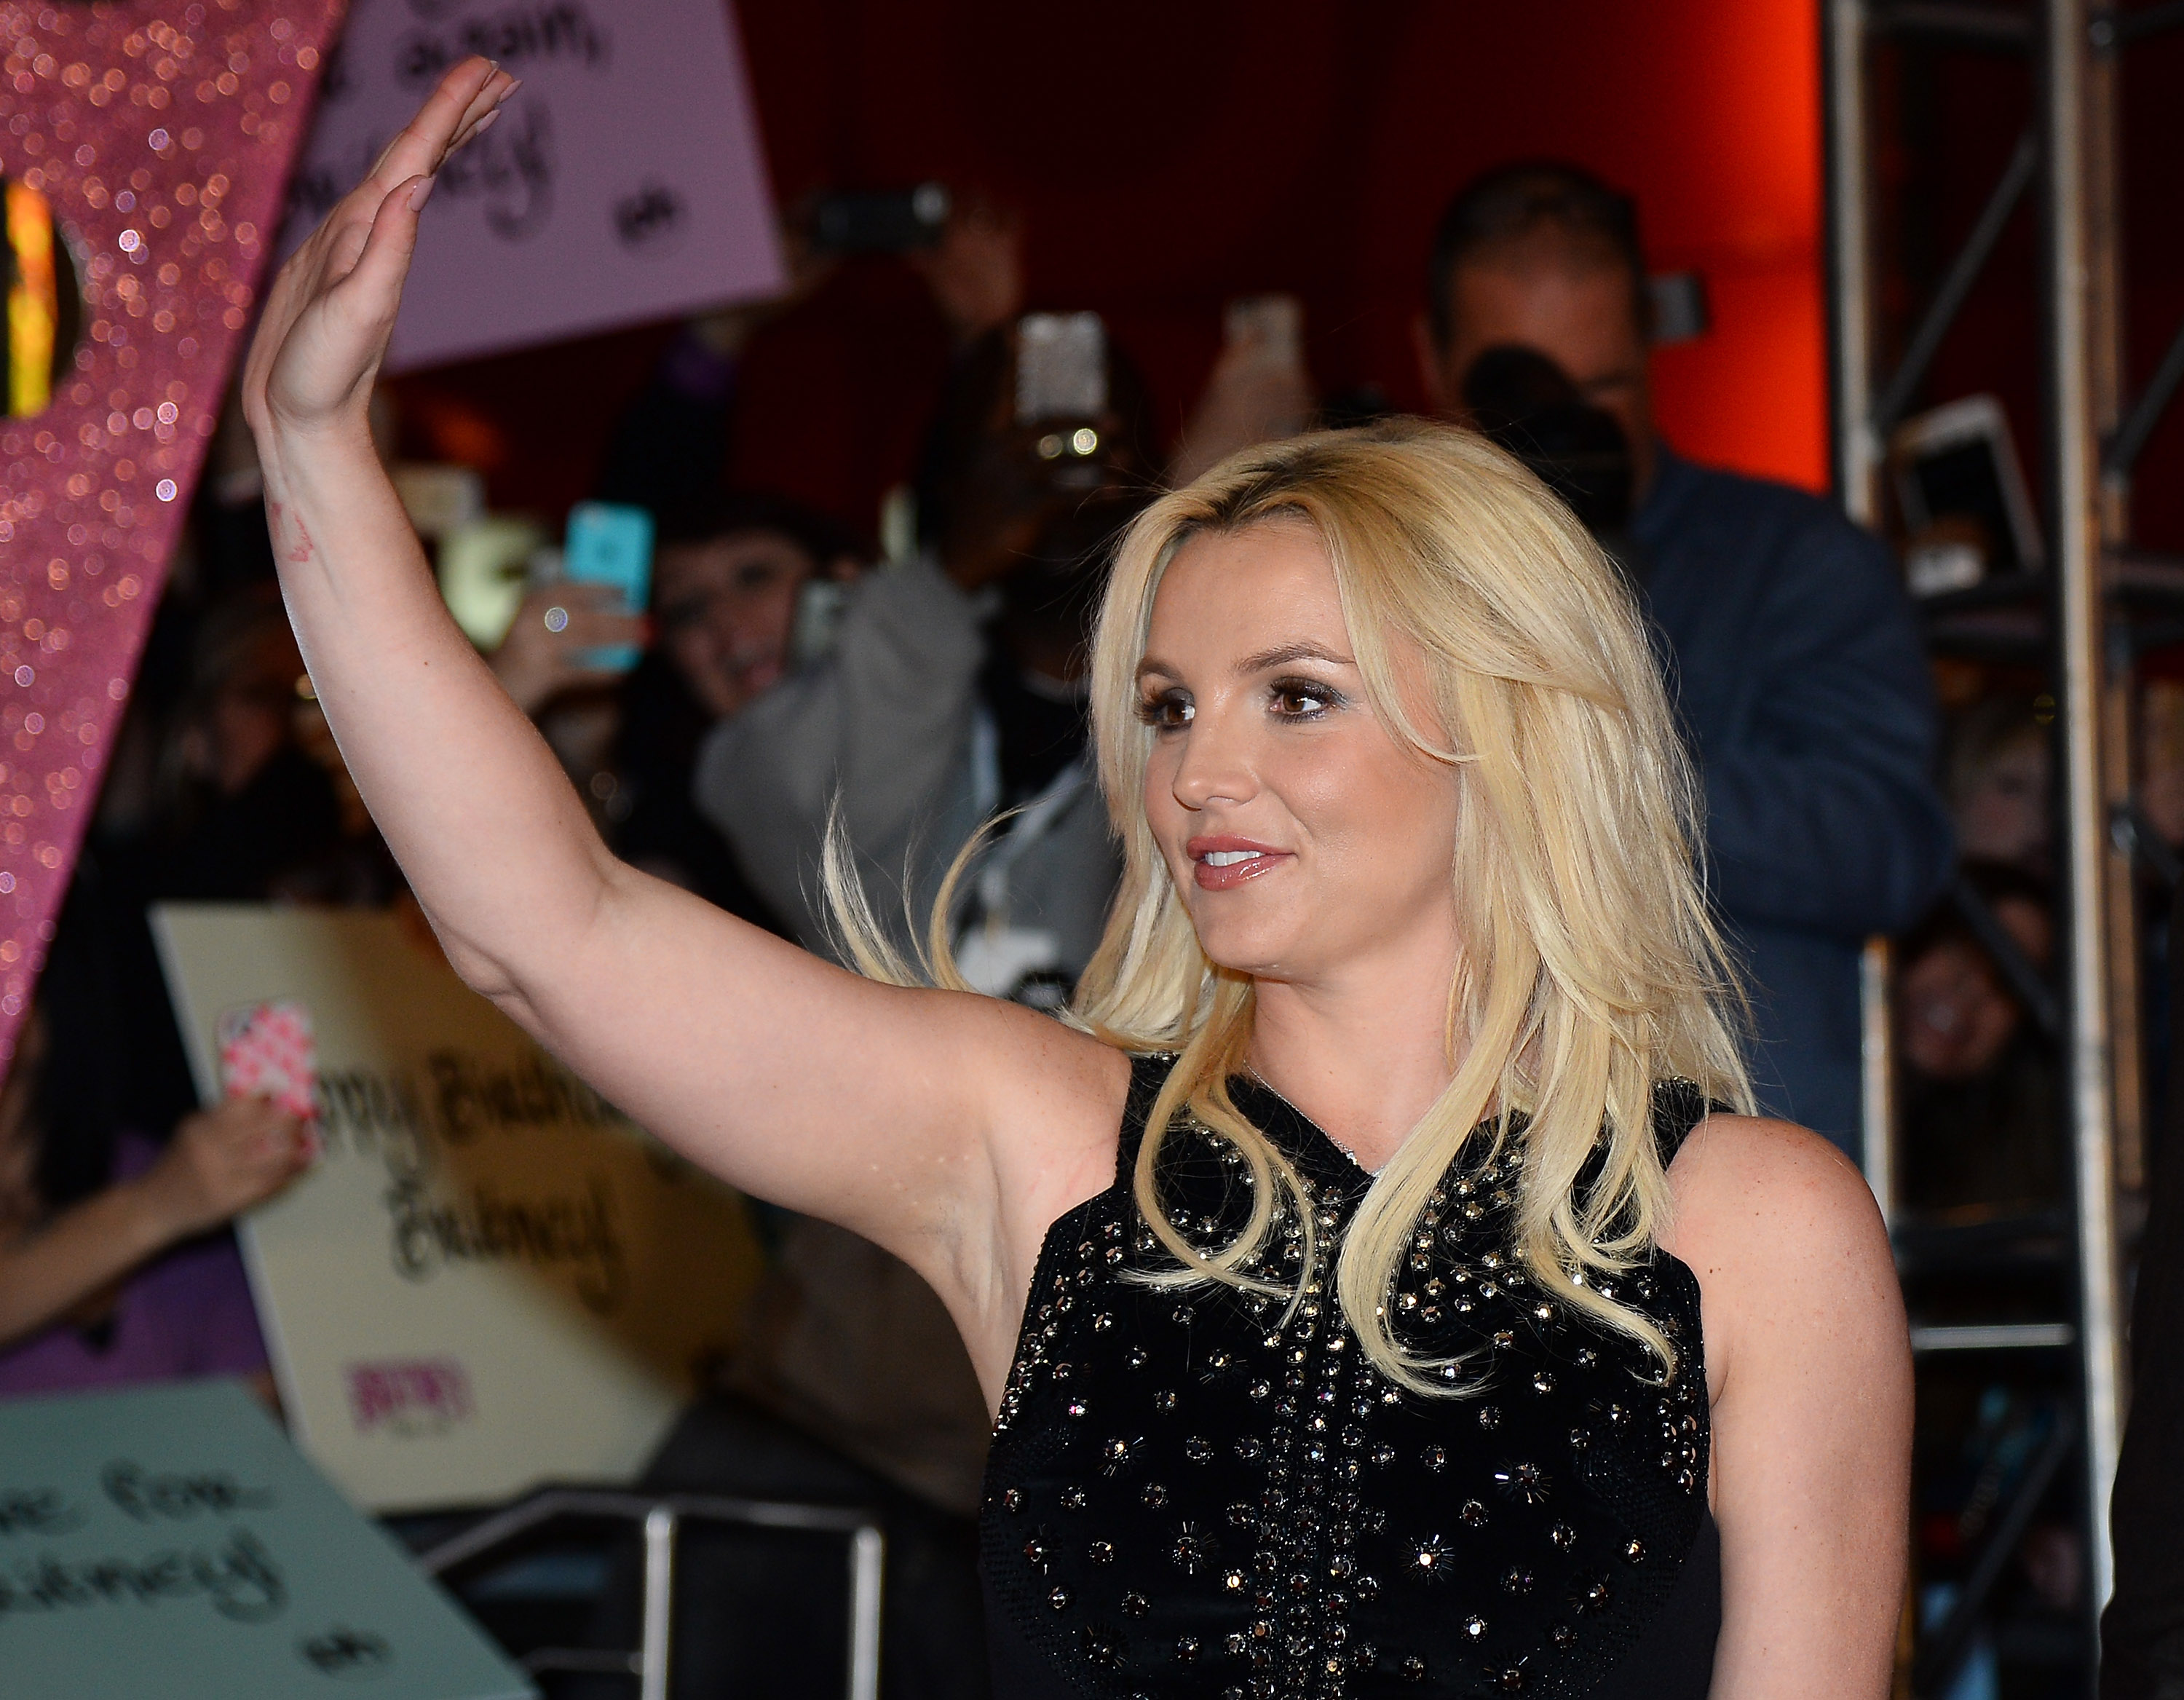 Britney Spears Mic Pack Falls Off During Concert But Oops The Singing Keeps Going Video